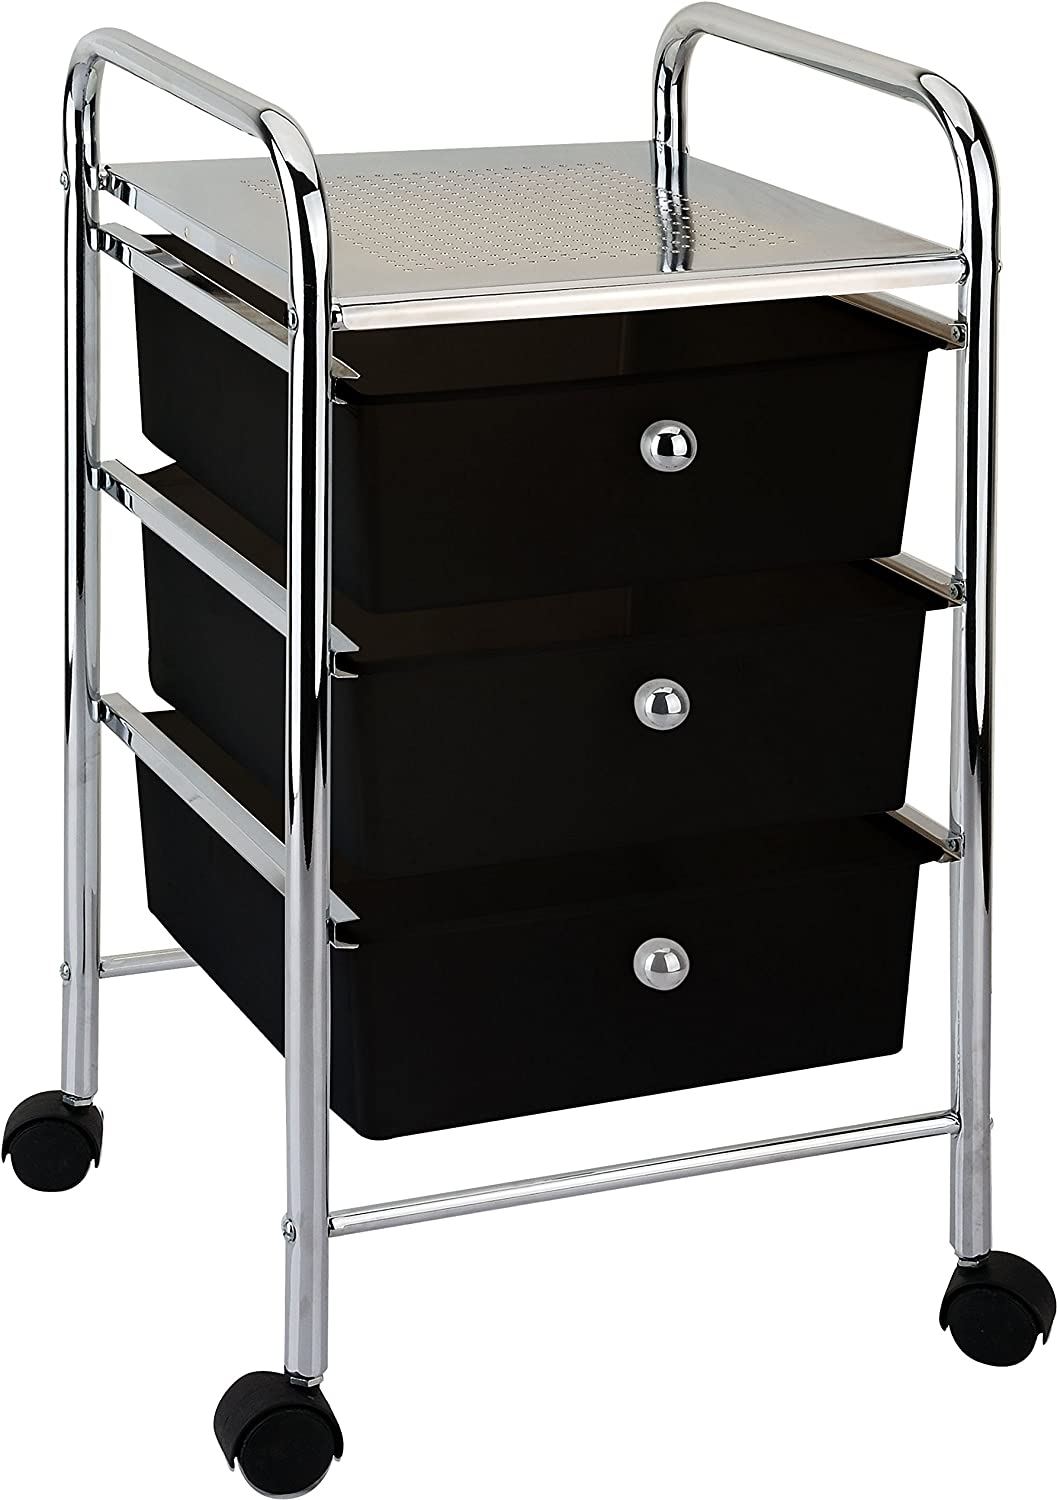 3-Drawer Organizer w Casters Mobile 2